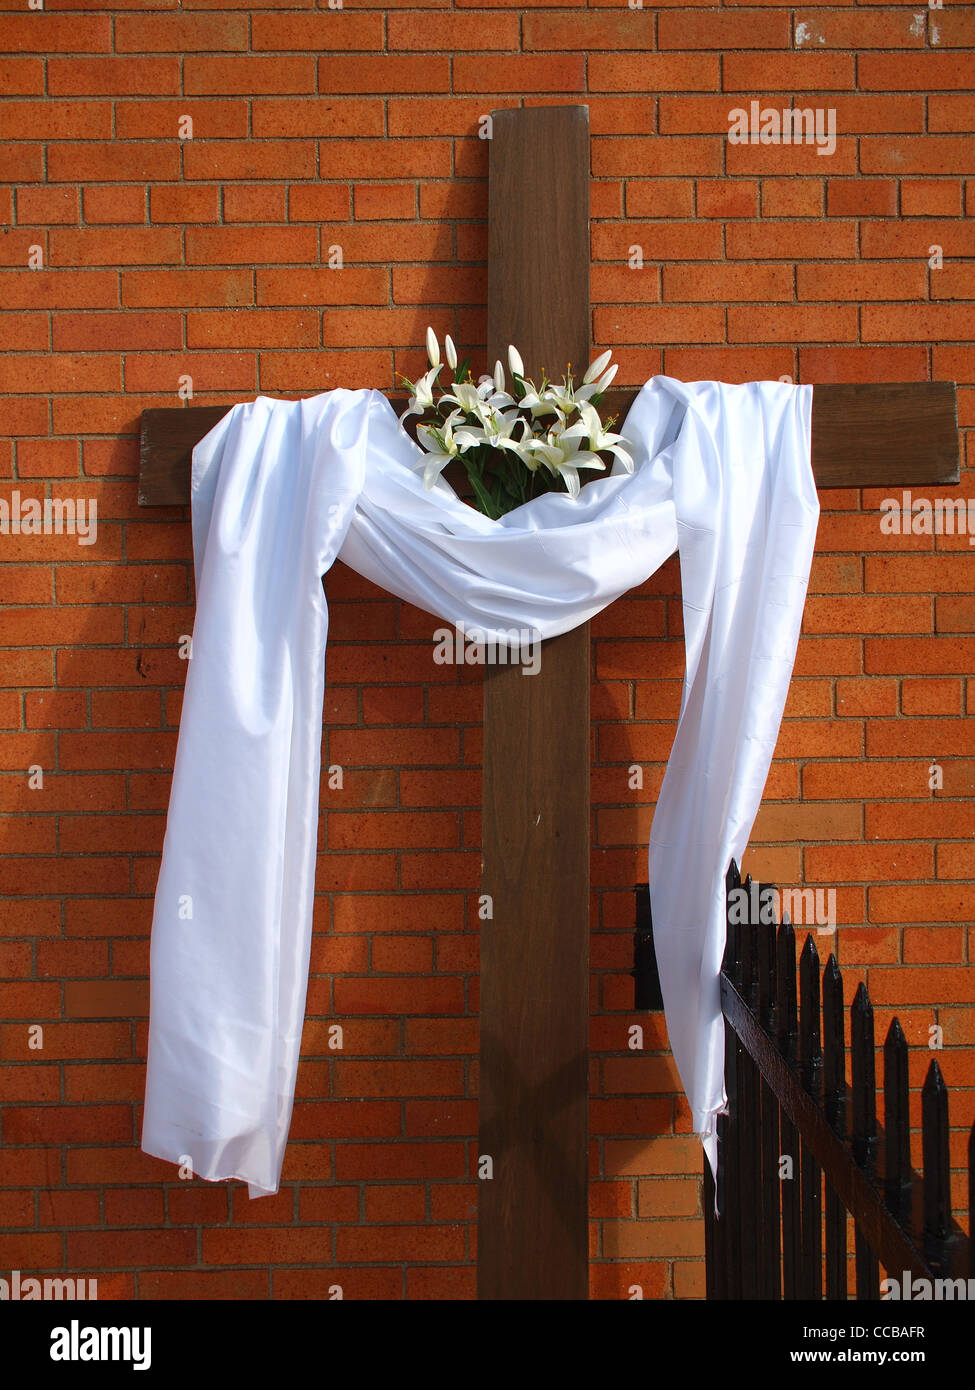 Easter cross with resurrection symbols of shroud and lilies easter cross with resurrection symbols of shroud and lilies catholic church of our lady of mount carmel brooklyn new york buycottarizona Images